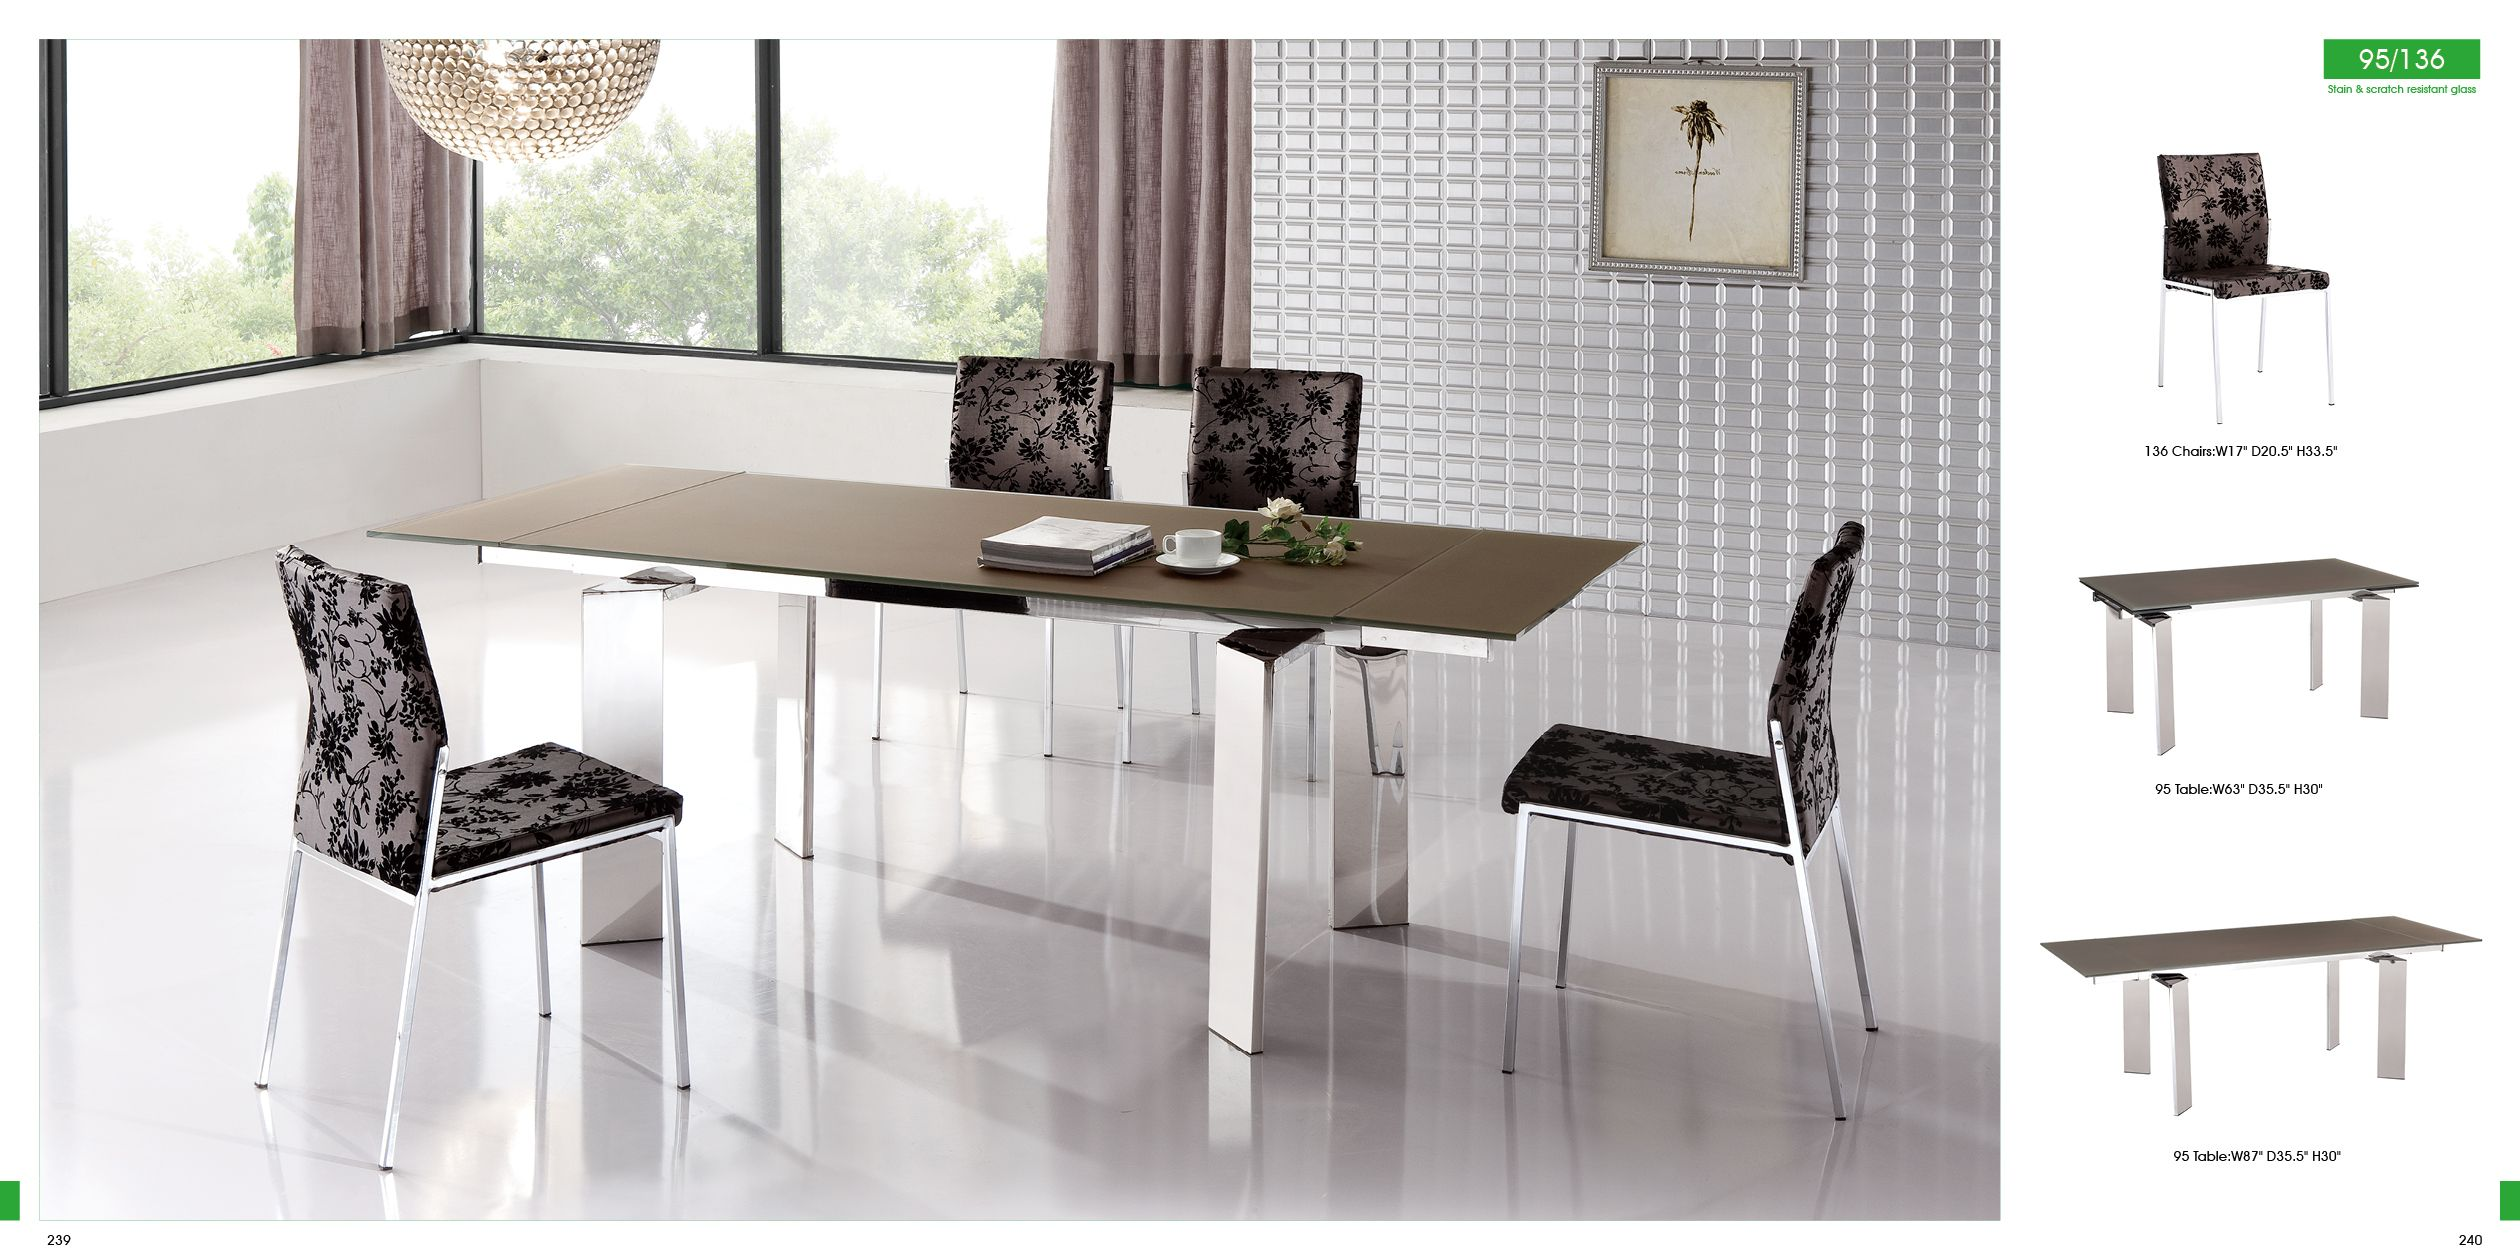 Contemporary dining room sets italian dining room design ideas contemporary dining room sets italian extraordinary 95 table and 136 chairs price includes 20 discountbrown dzzzfo